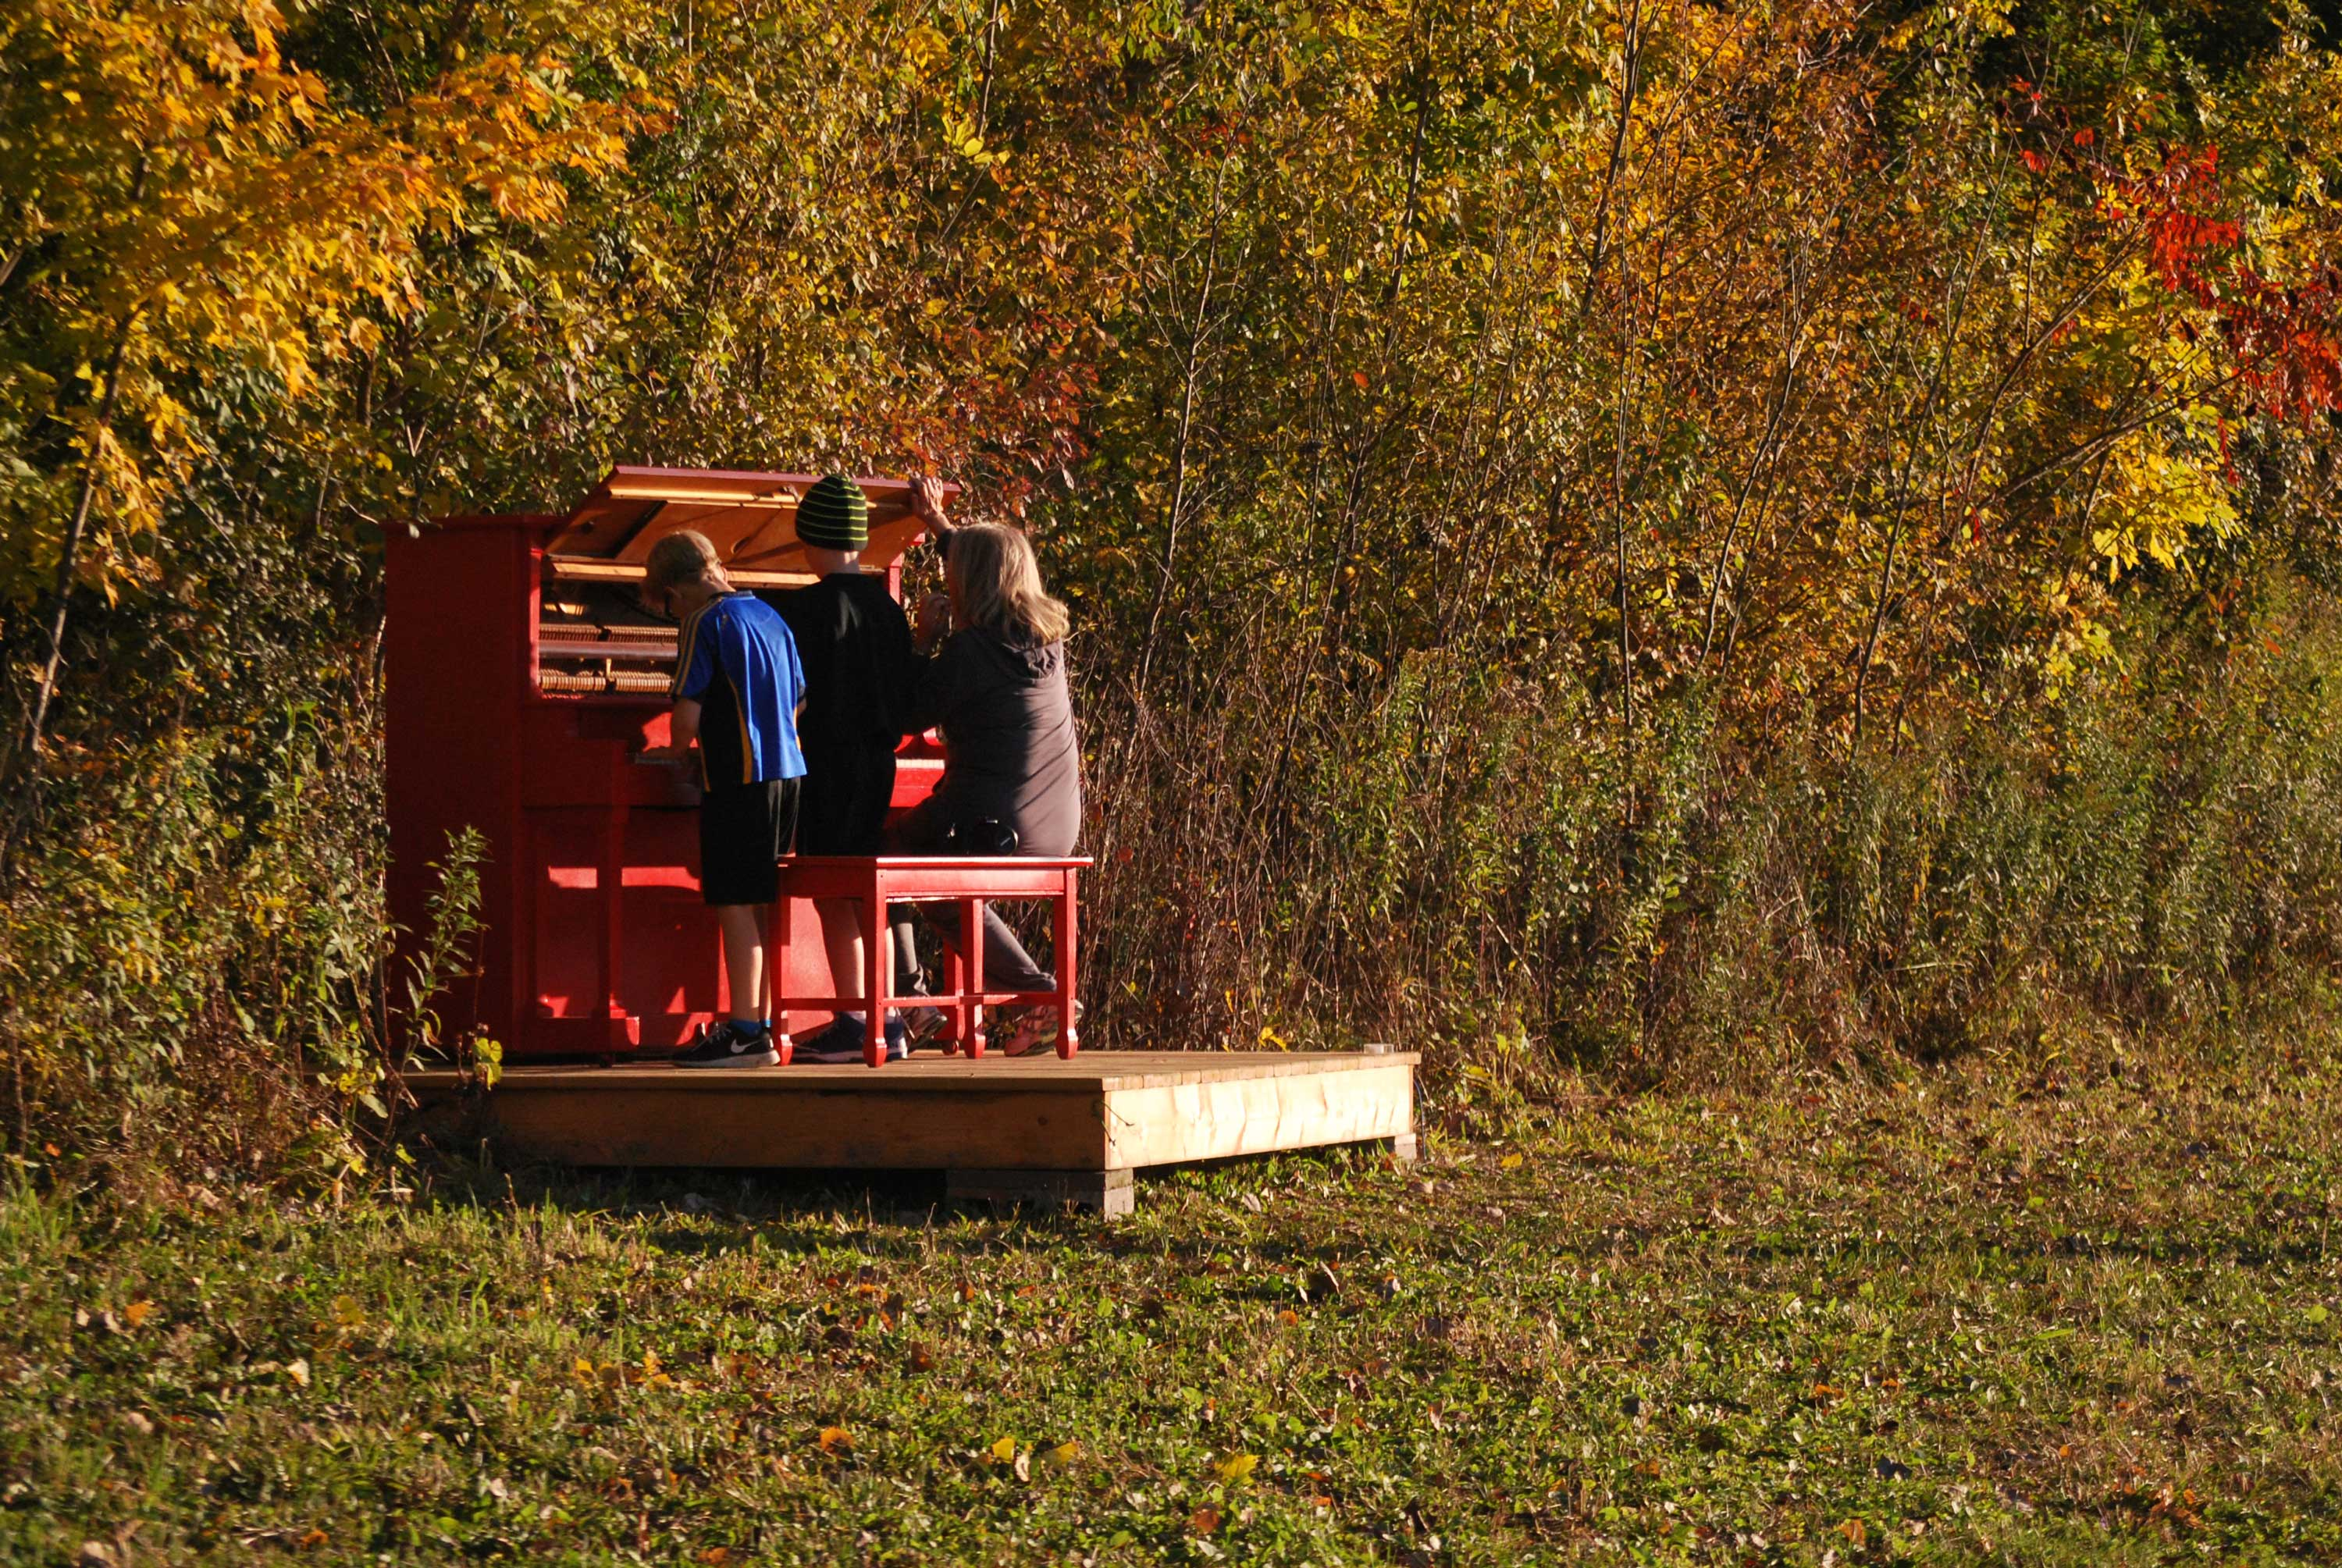 Red Piano, Fermentation Fest, Reedsburg, WI